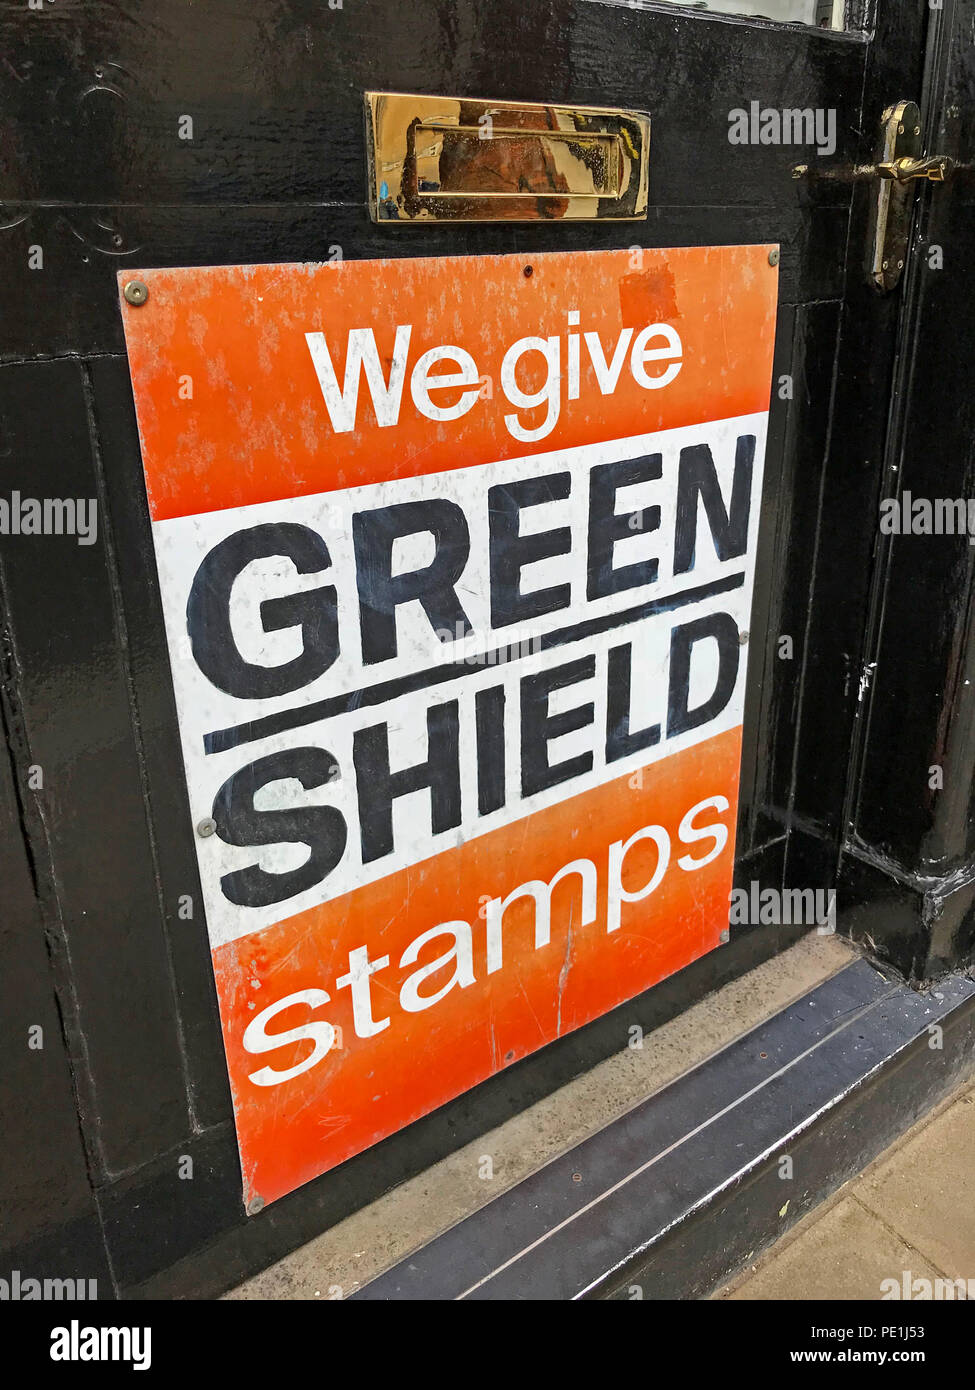 We Give Green Shield stamps sign, Tewkesbury, Gloucester,  Gloucestershire, England, UK - Stock Image